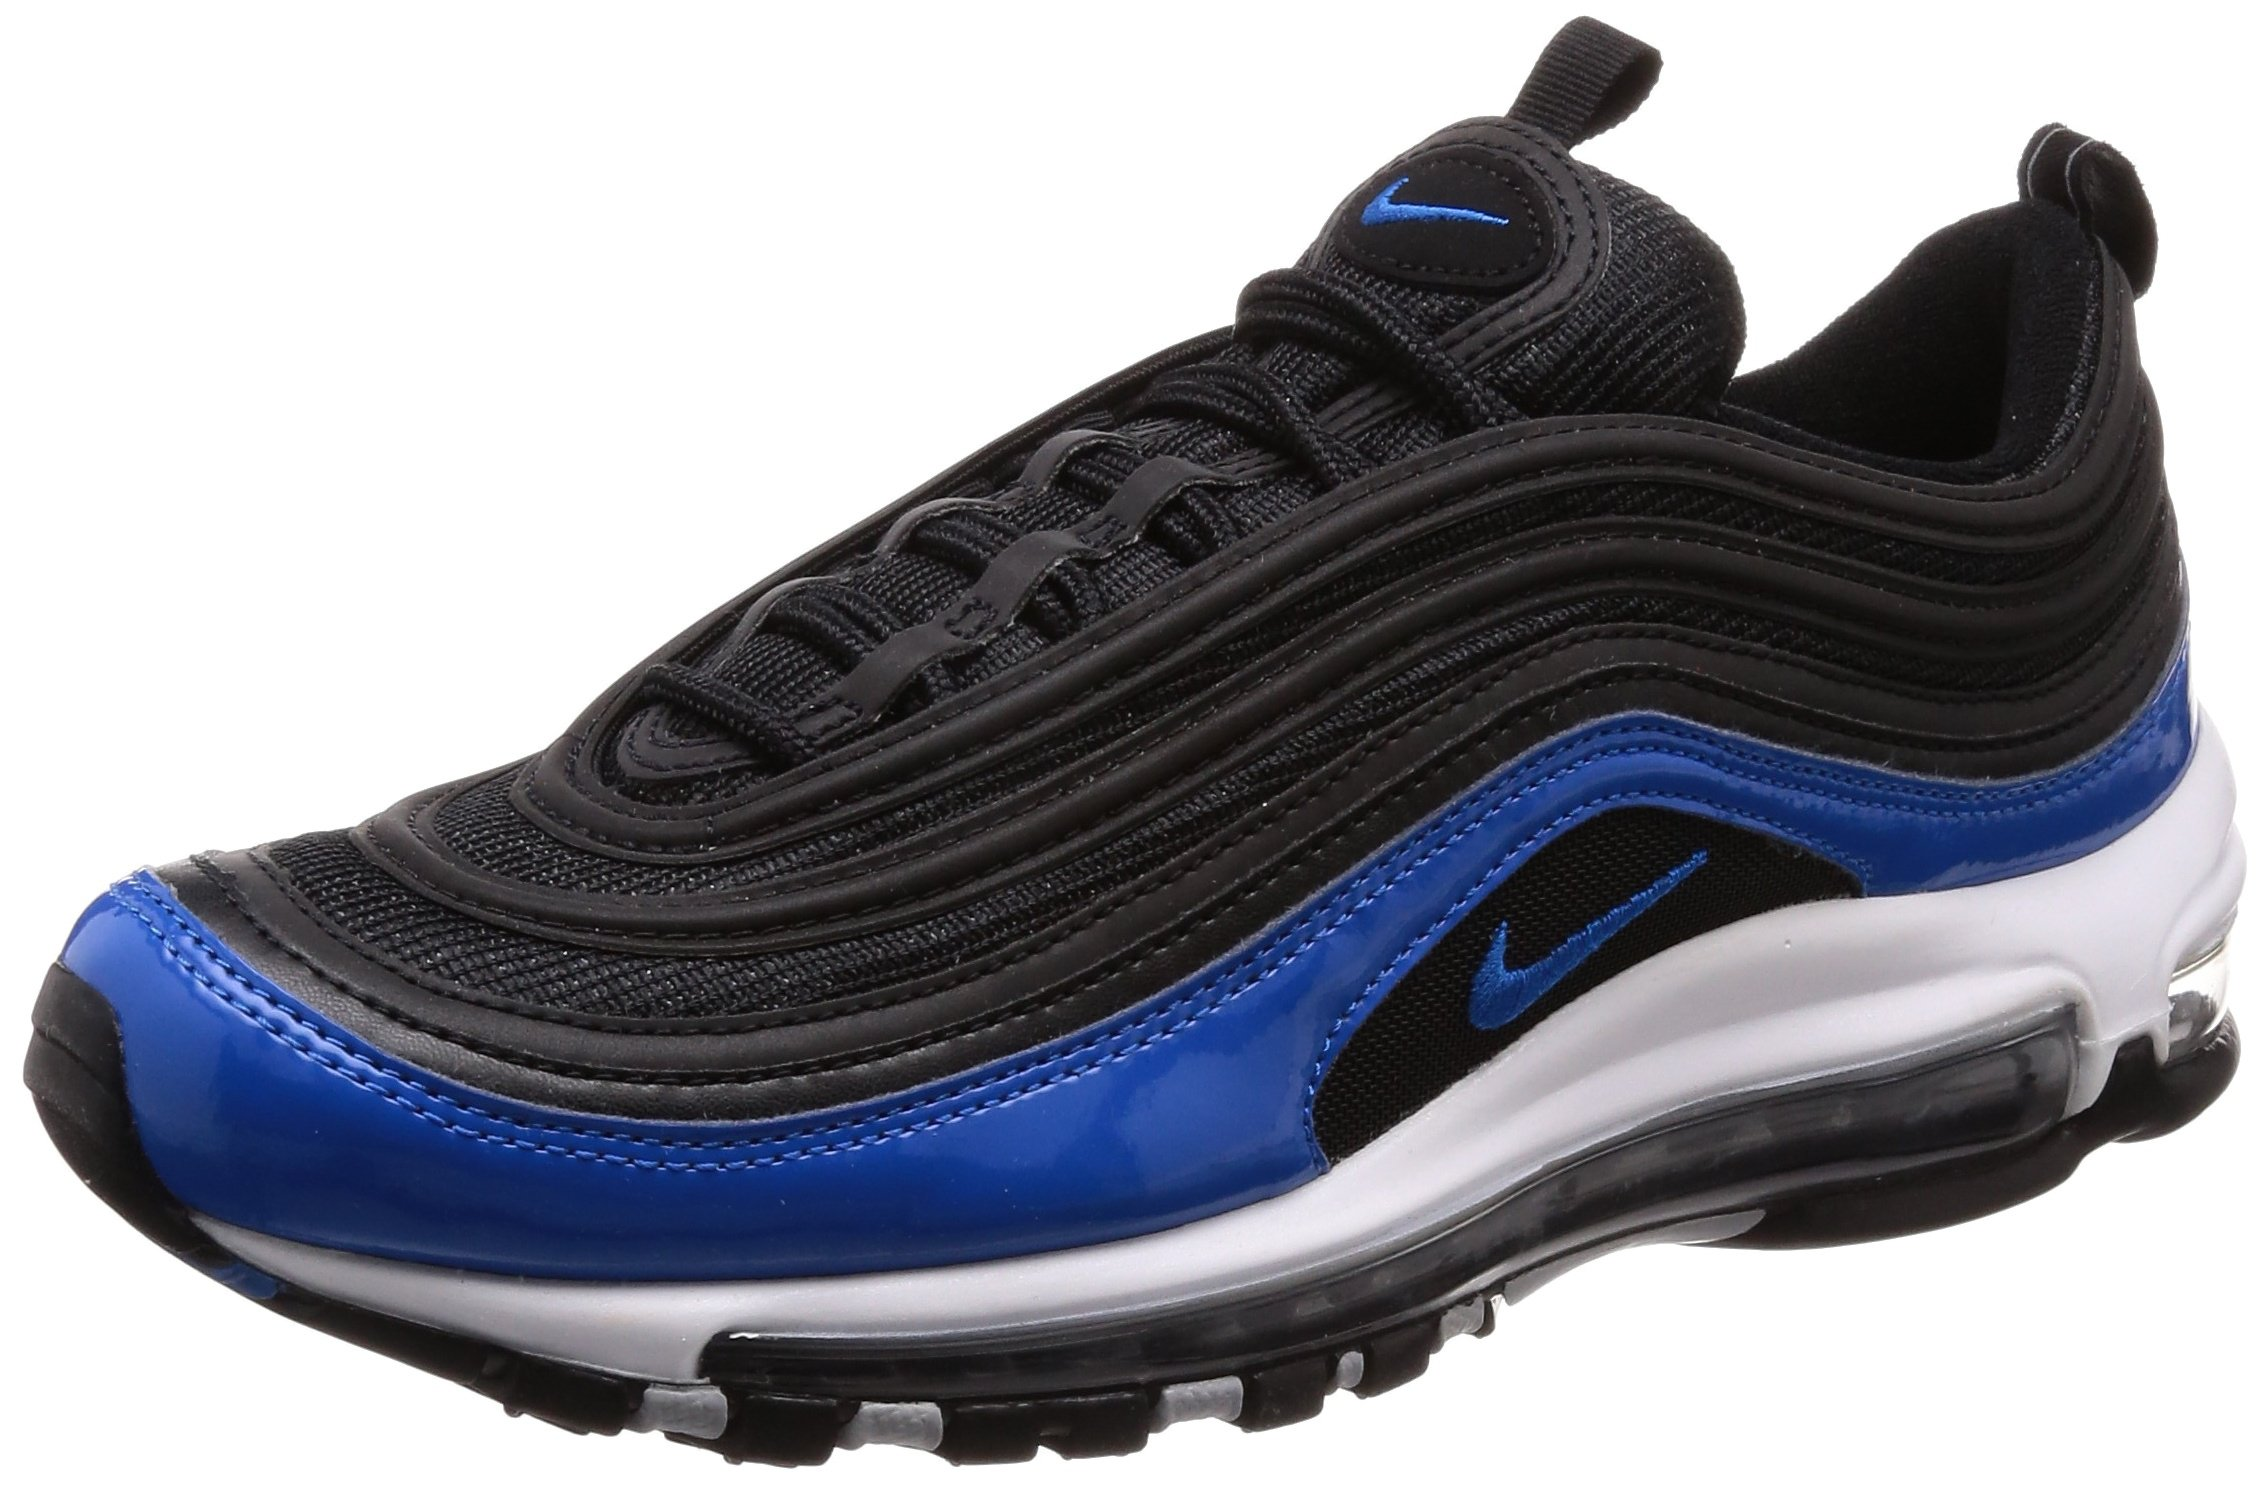 Nike Men S Air Max 97 Black Blue Nebula Wolf Grey Running Shoe 11